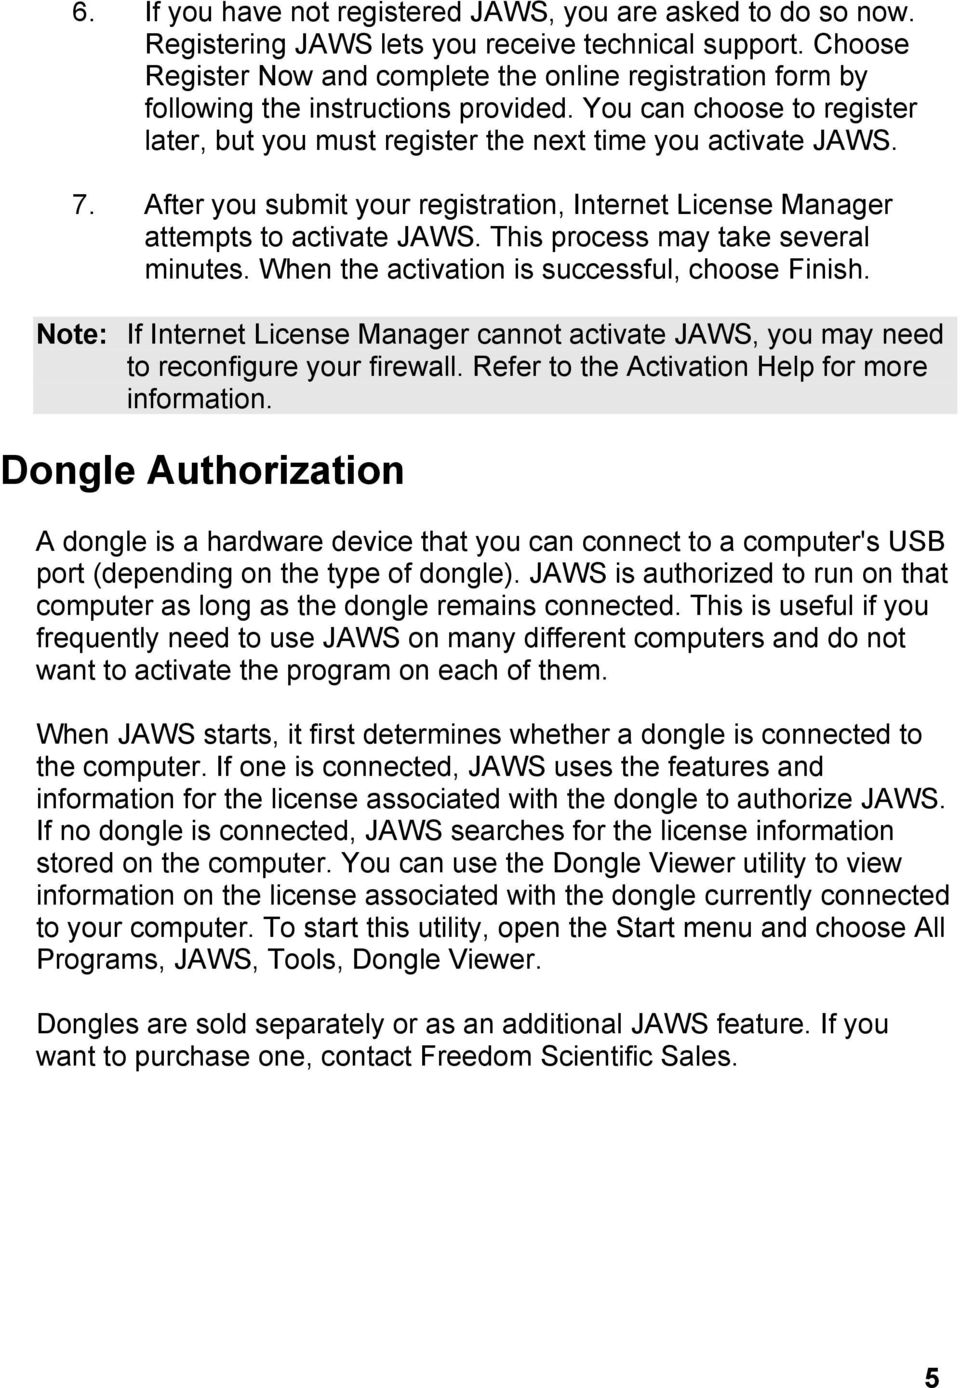 After you submit your registration, Internet License Manager attempts to activate JAWS. This process may take several minutes. When the activation is successful, choose Finish.